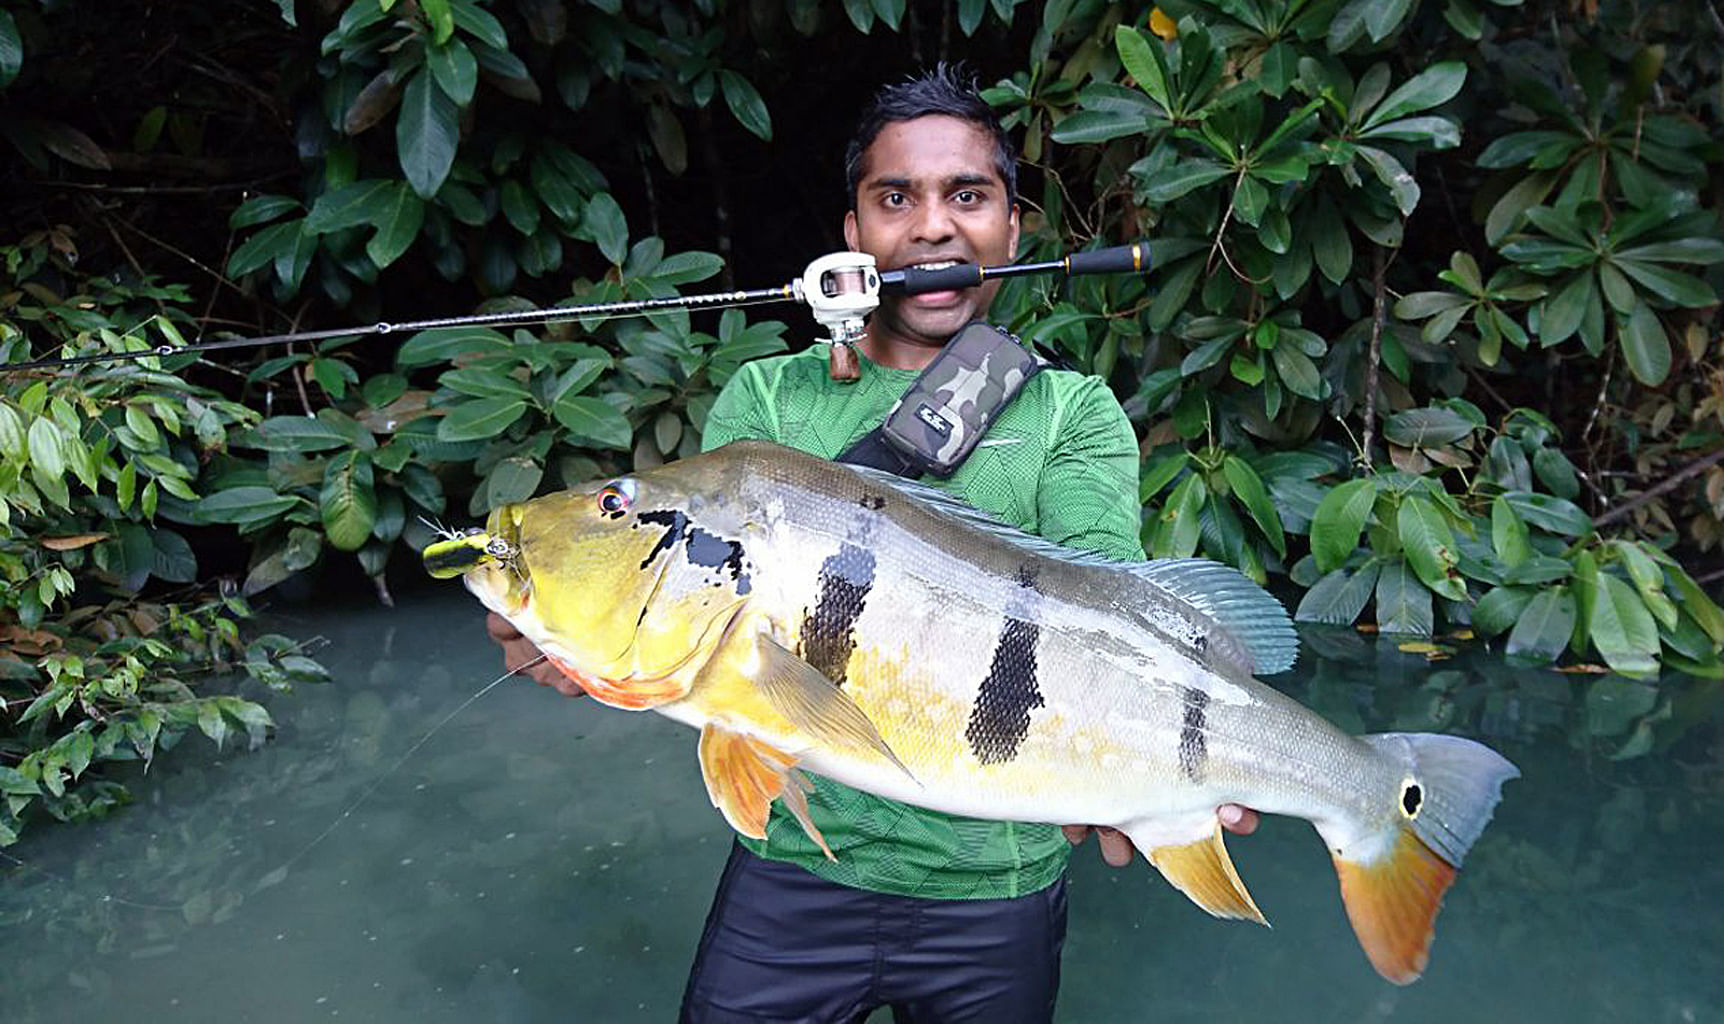 Anglers catch big fish in Singapore waters, Lifestyle News & Top